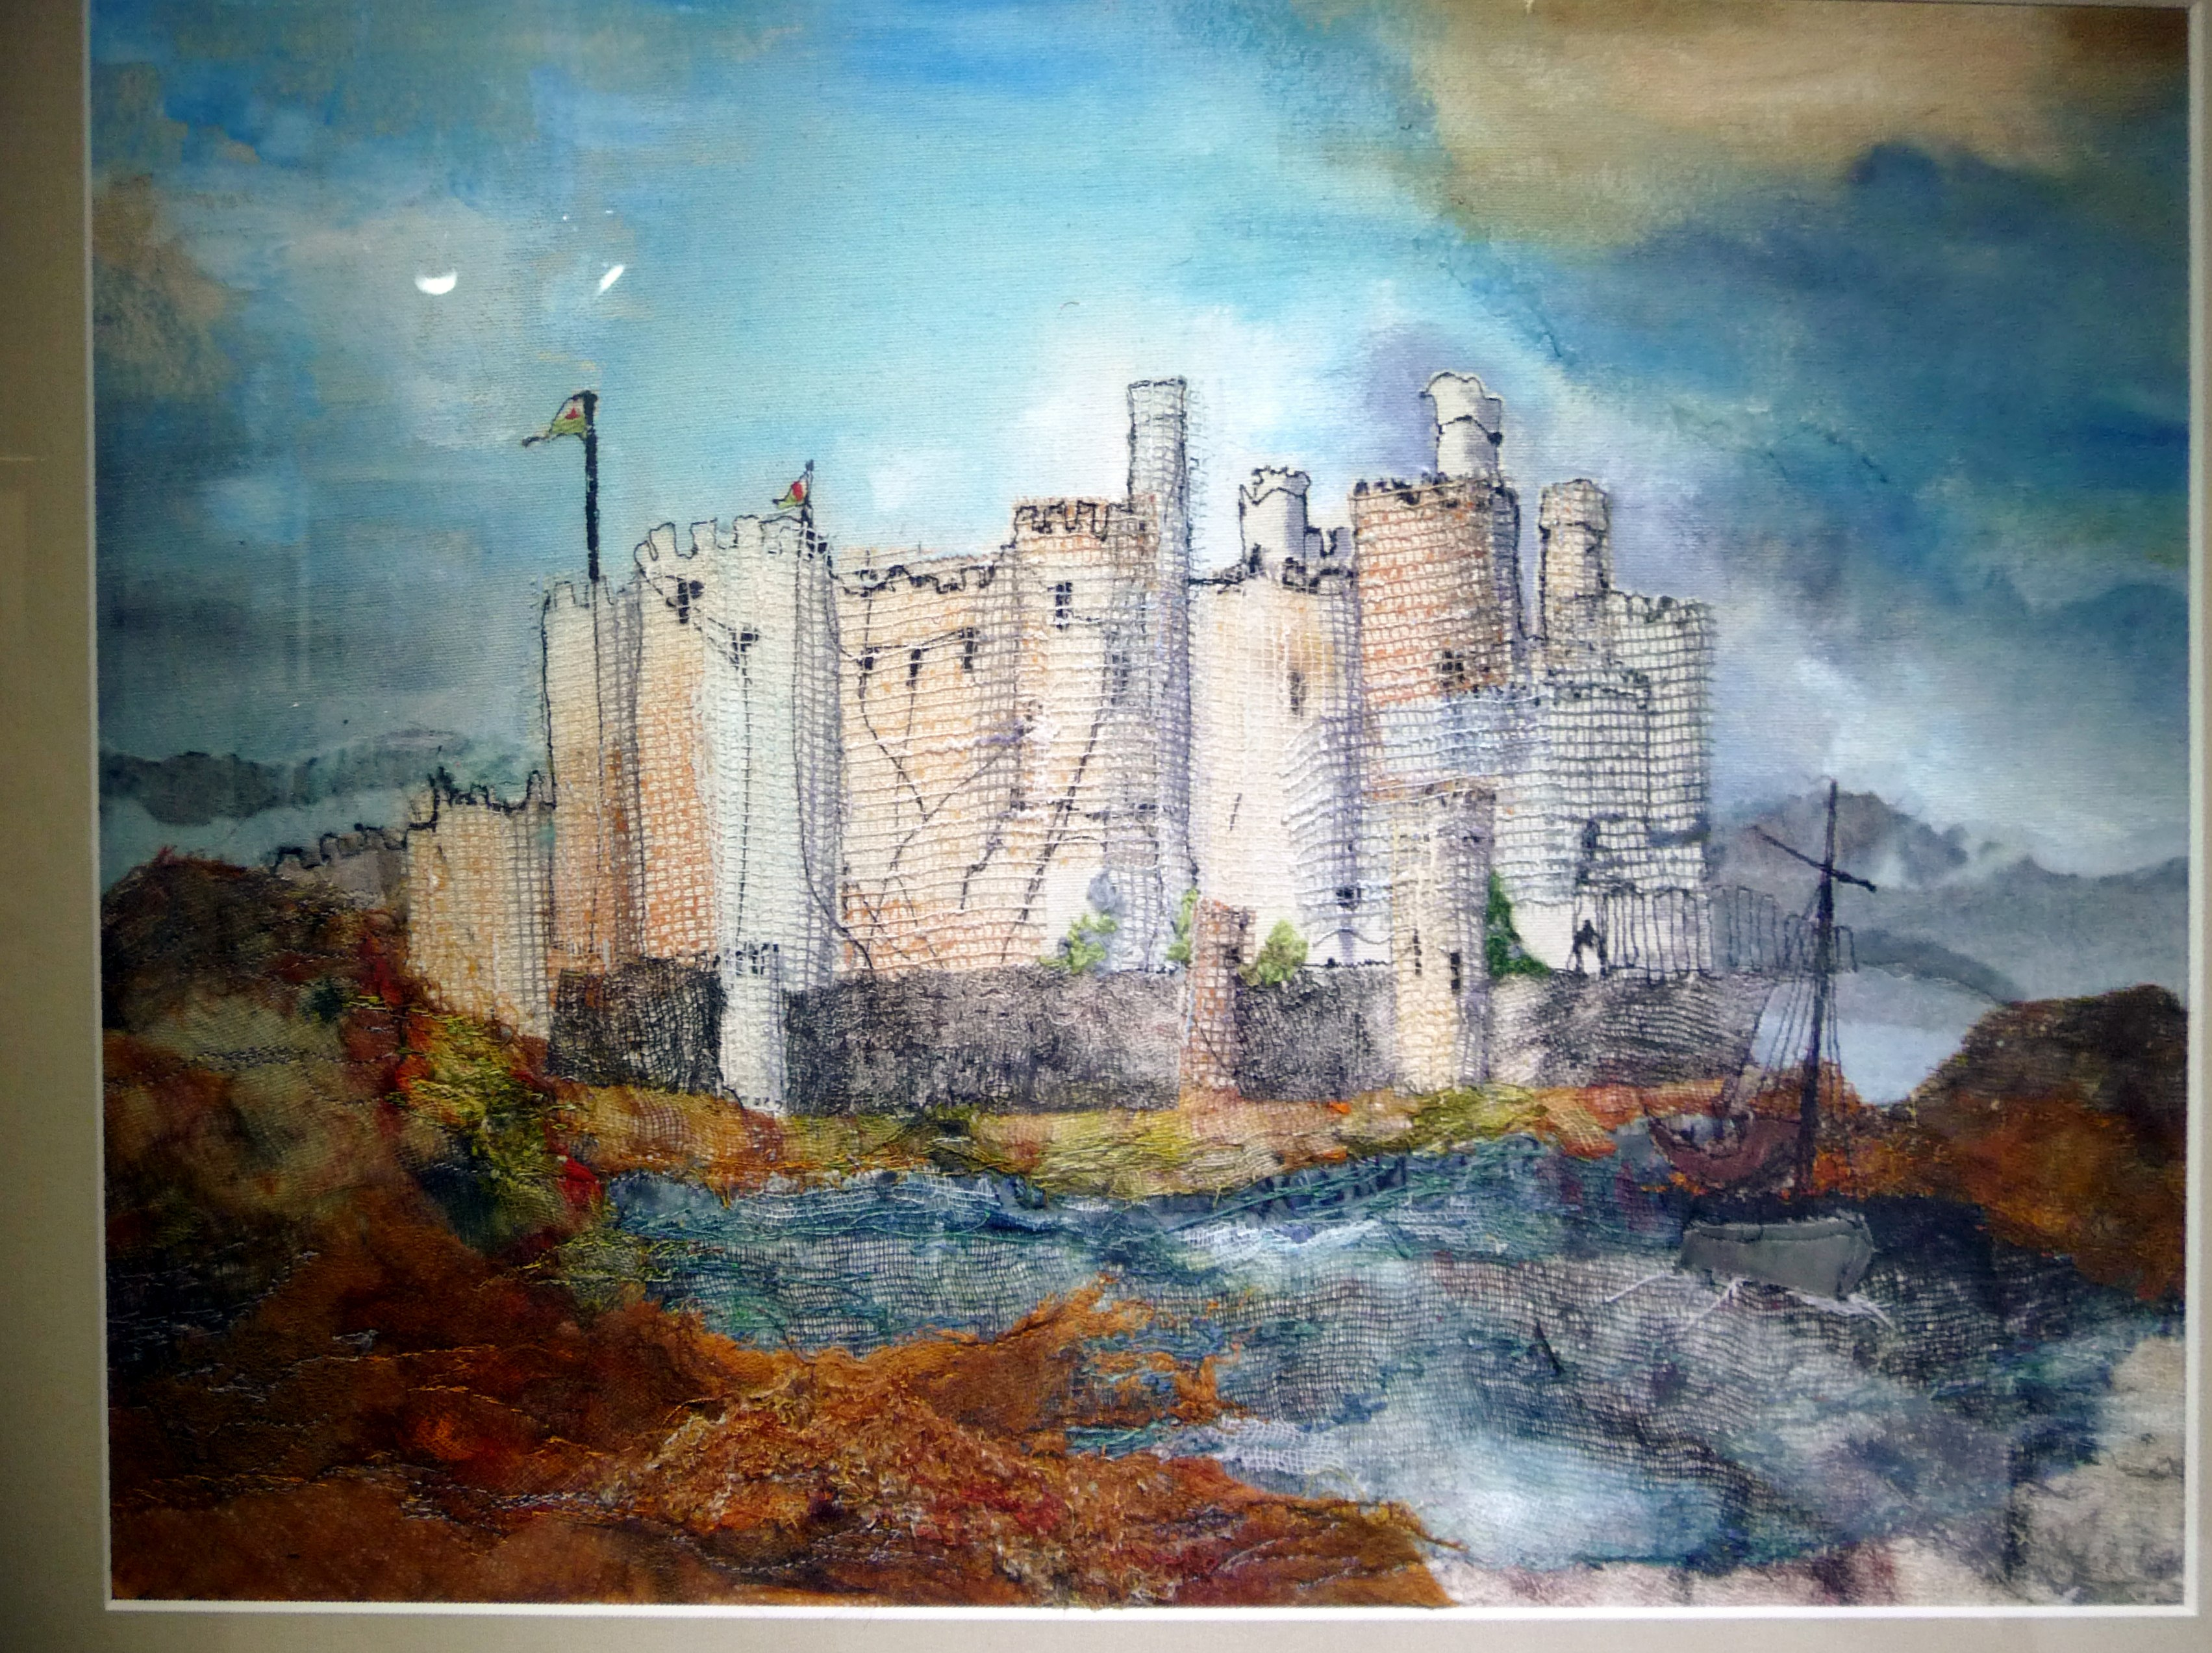 CONWy CASTLE (AFTER TURNER) by Pat Barry, mixed media with hand & machine embroidery